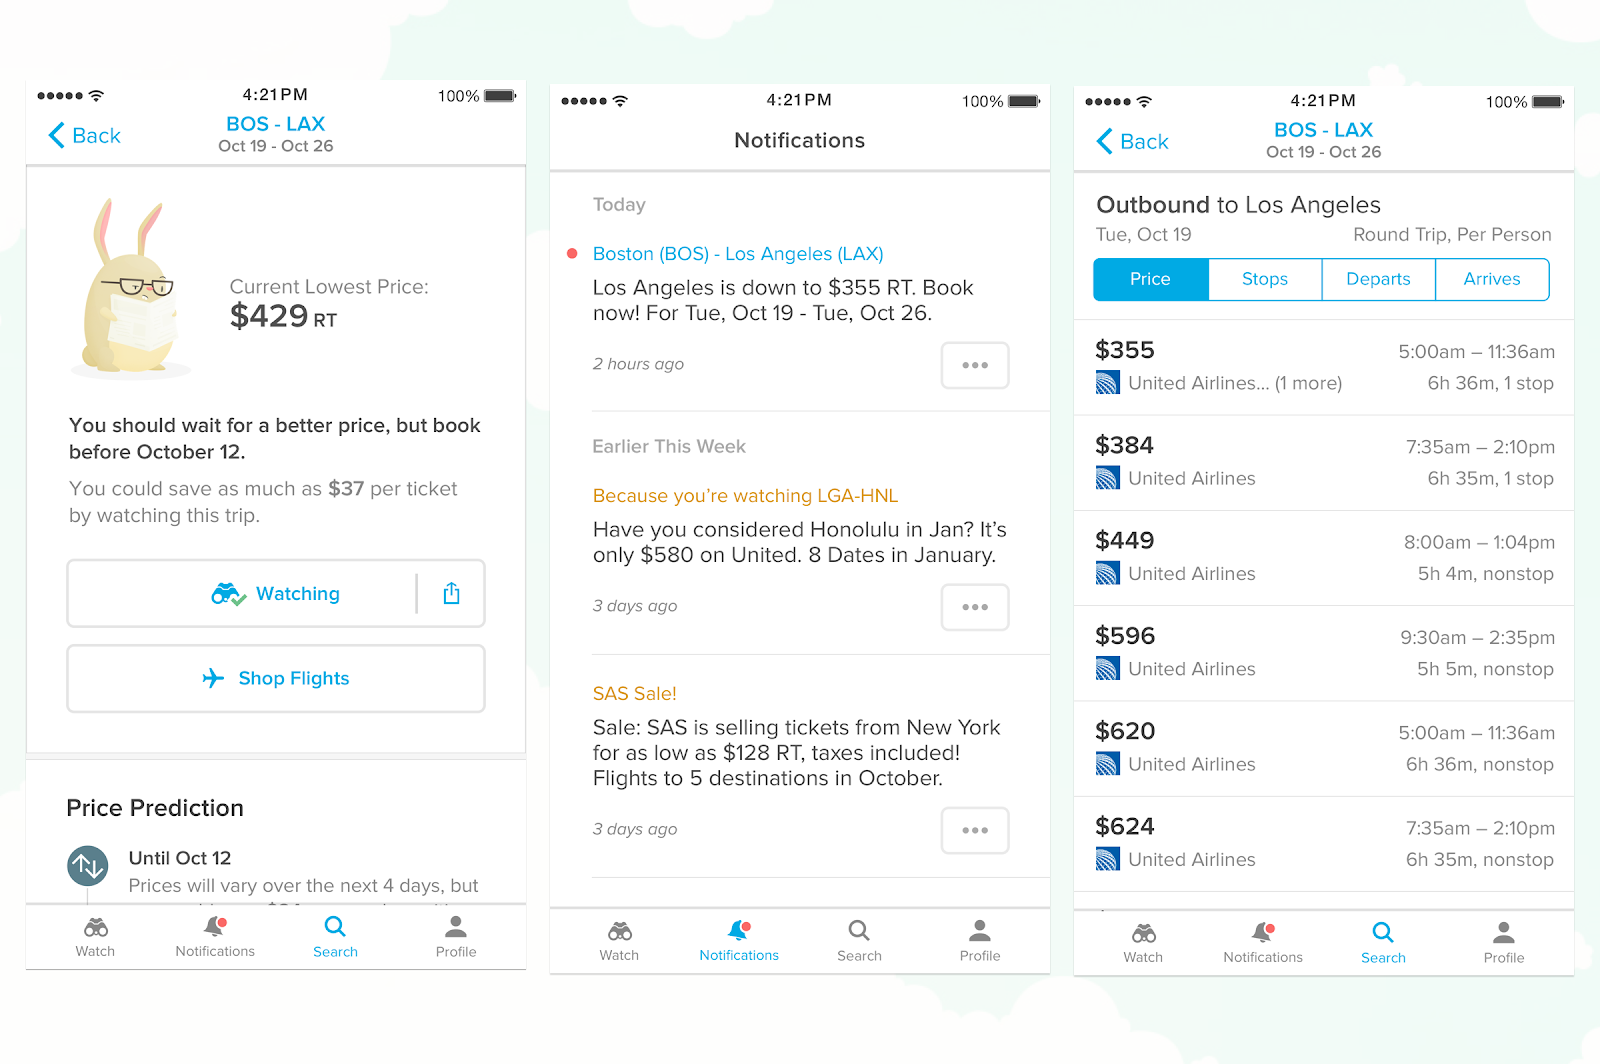 this is an image of 3 mobile screens from the hopper flight price tracking app. on the left are buy/wait recommendations based on the current price of a bos-lax flight. in the middle are in-app notifications from hopper in a notification center. on the right is a flight search for boston to los angeles flights.